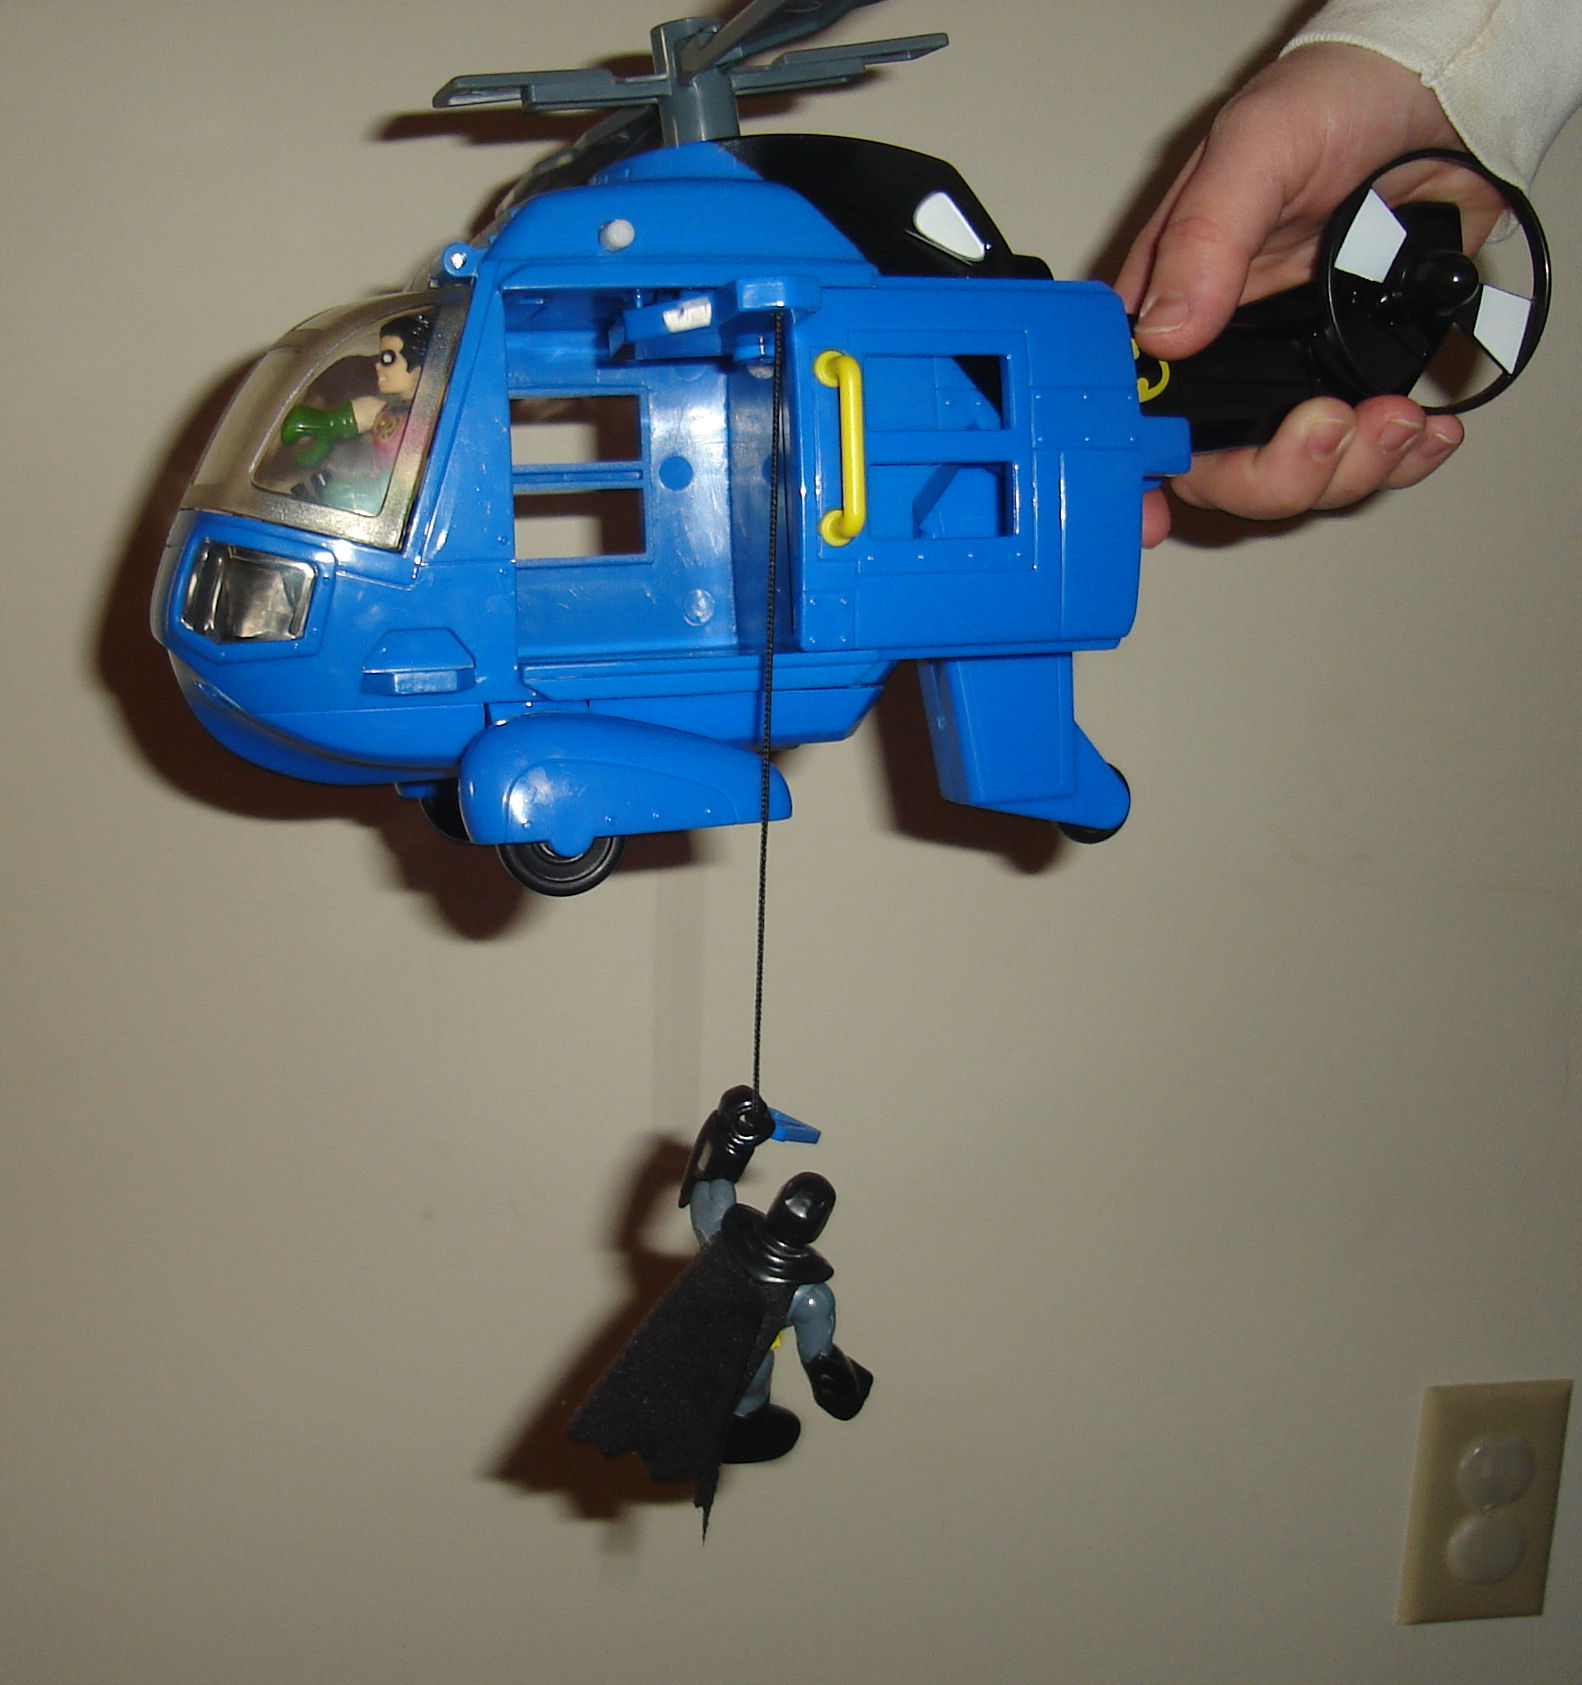 The Batman Helicopter